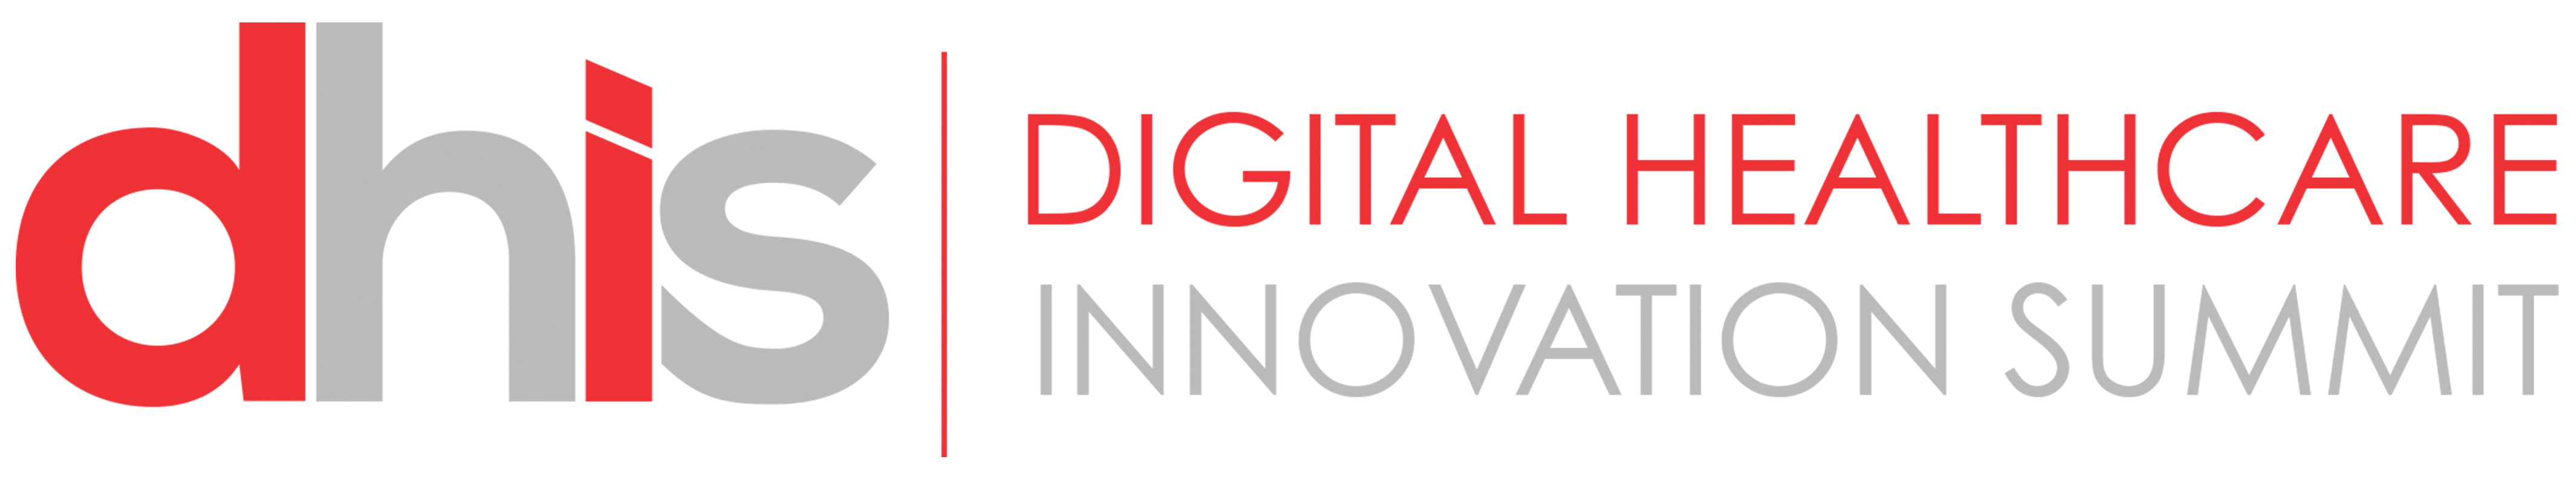 8th Annual Digital Healthcare Innovation Summit - October 11, 2018